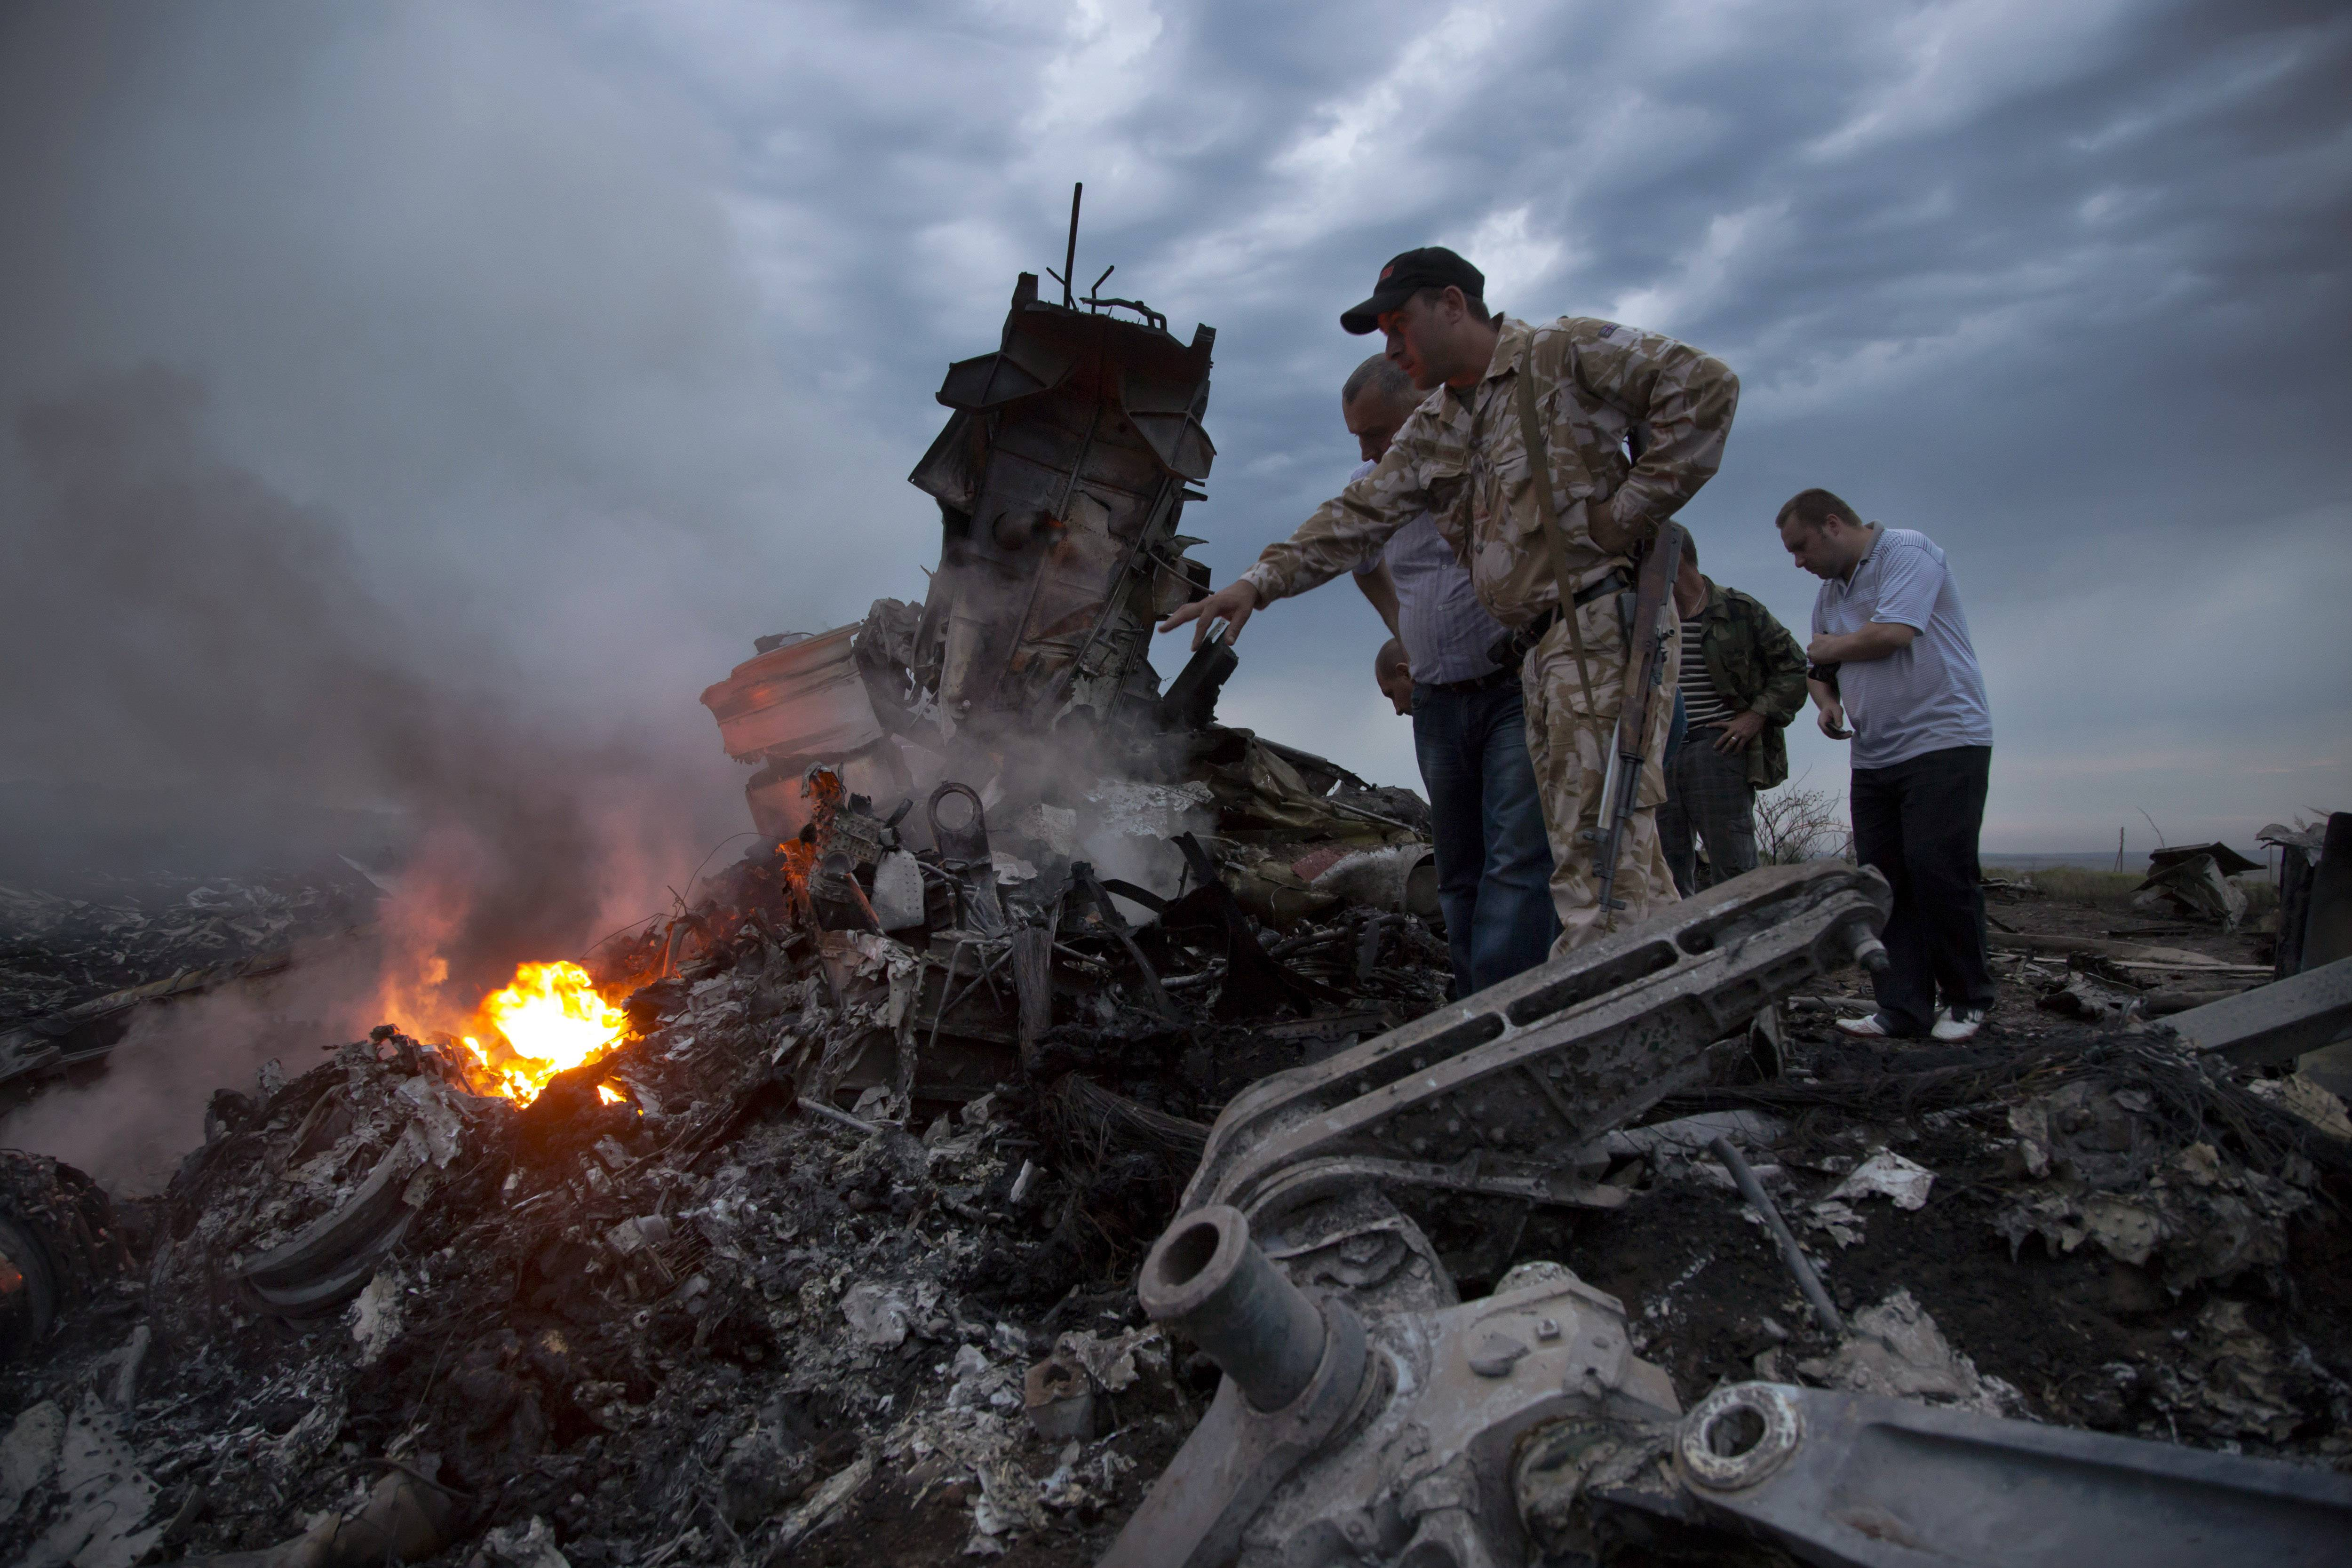 People inspect the crash site of a passenger plane near the village of Hrabove, Ukraine, yesterday. Ukraine said a passenger plane carrying 298 people was shot down as it flew over the country, and both the government and the pro-Russia separatists fighting in the region denied any responsibility for downing the plane.